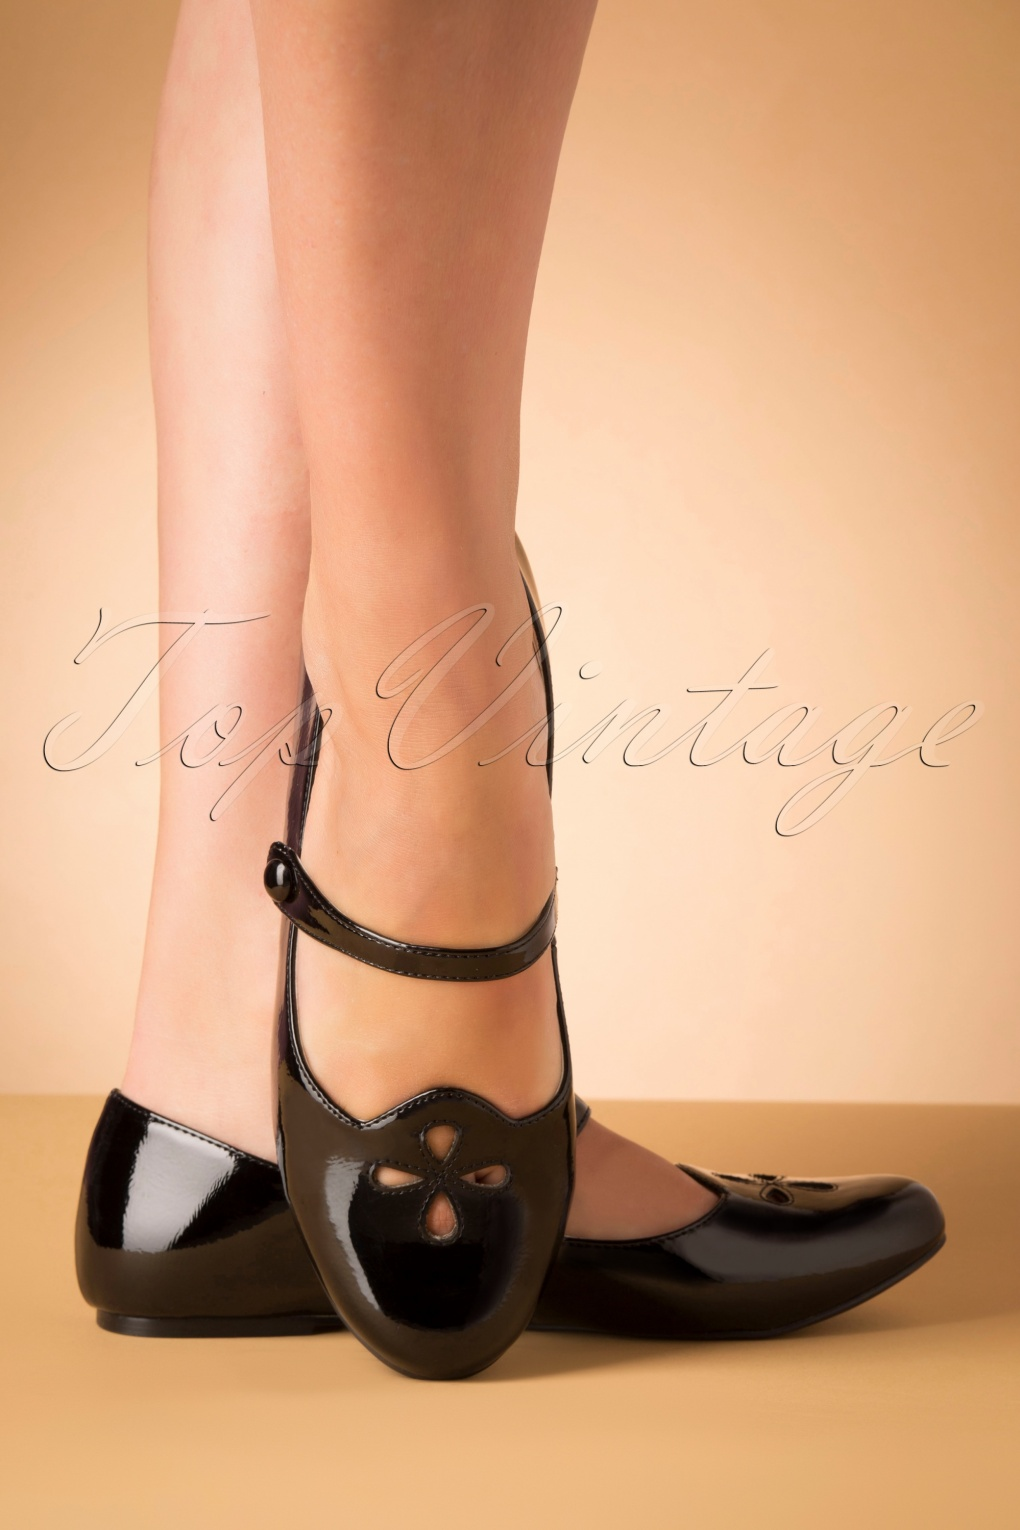 Retro Vintage Flats and Low Heel Shoes 60s Elizabeth Mary Jane Patent Flats in Black £58.15 AT vintagedancer.com